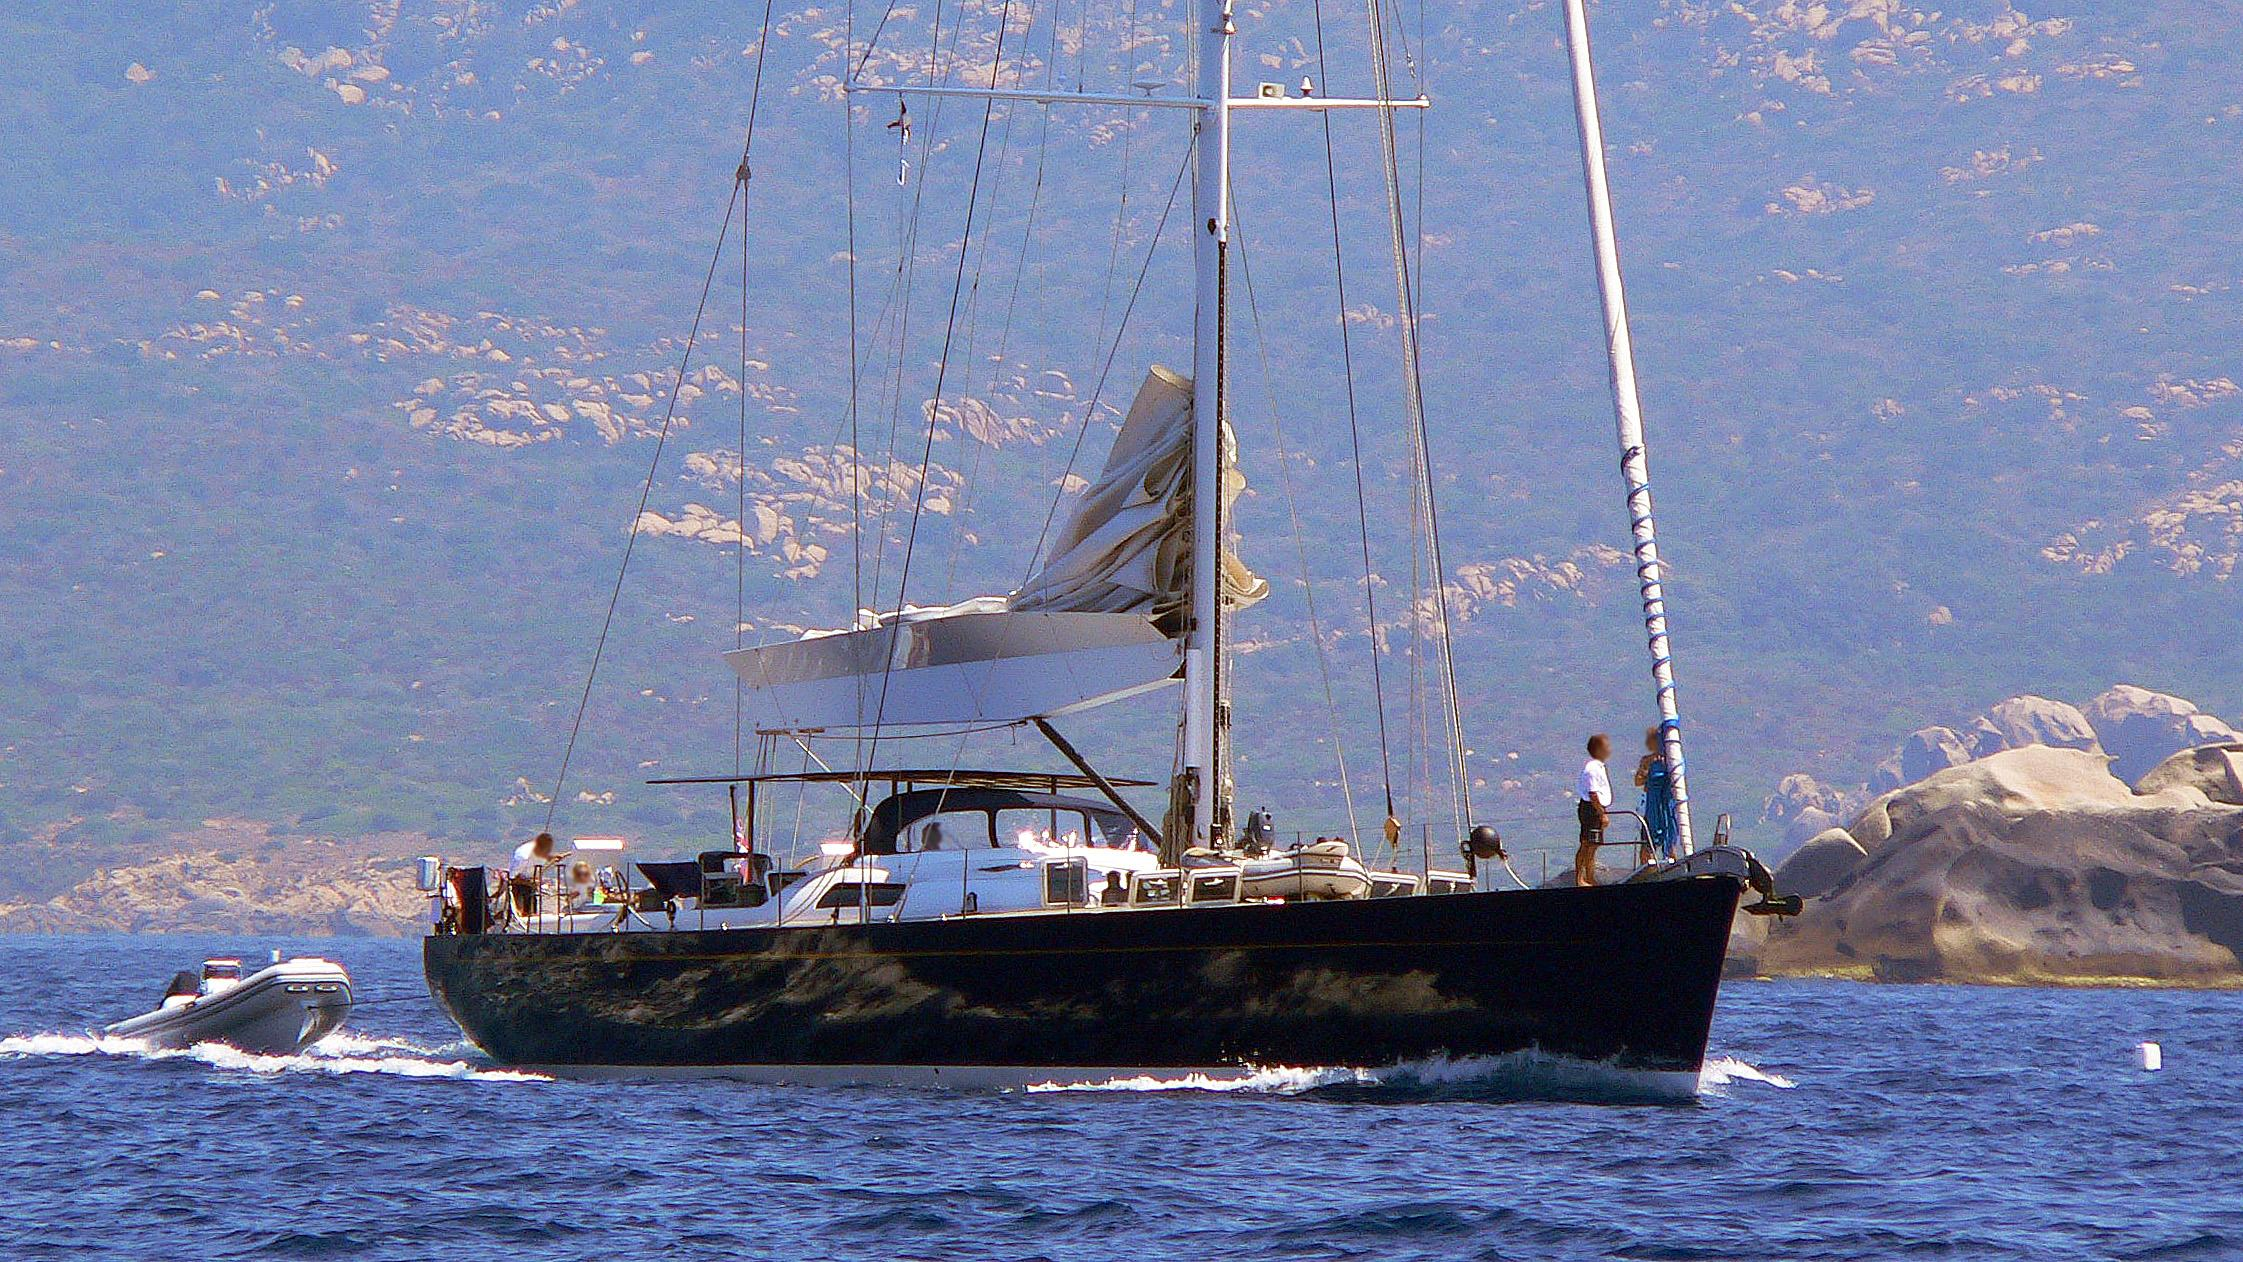 blue-diamond-sailing-yacht-h2o-2004-30m-cruising-bow